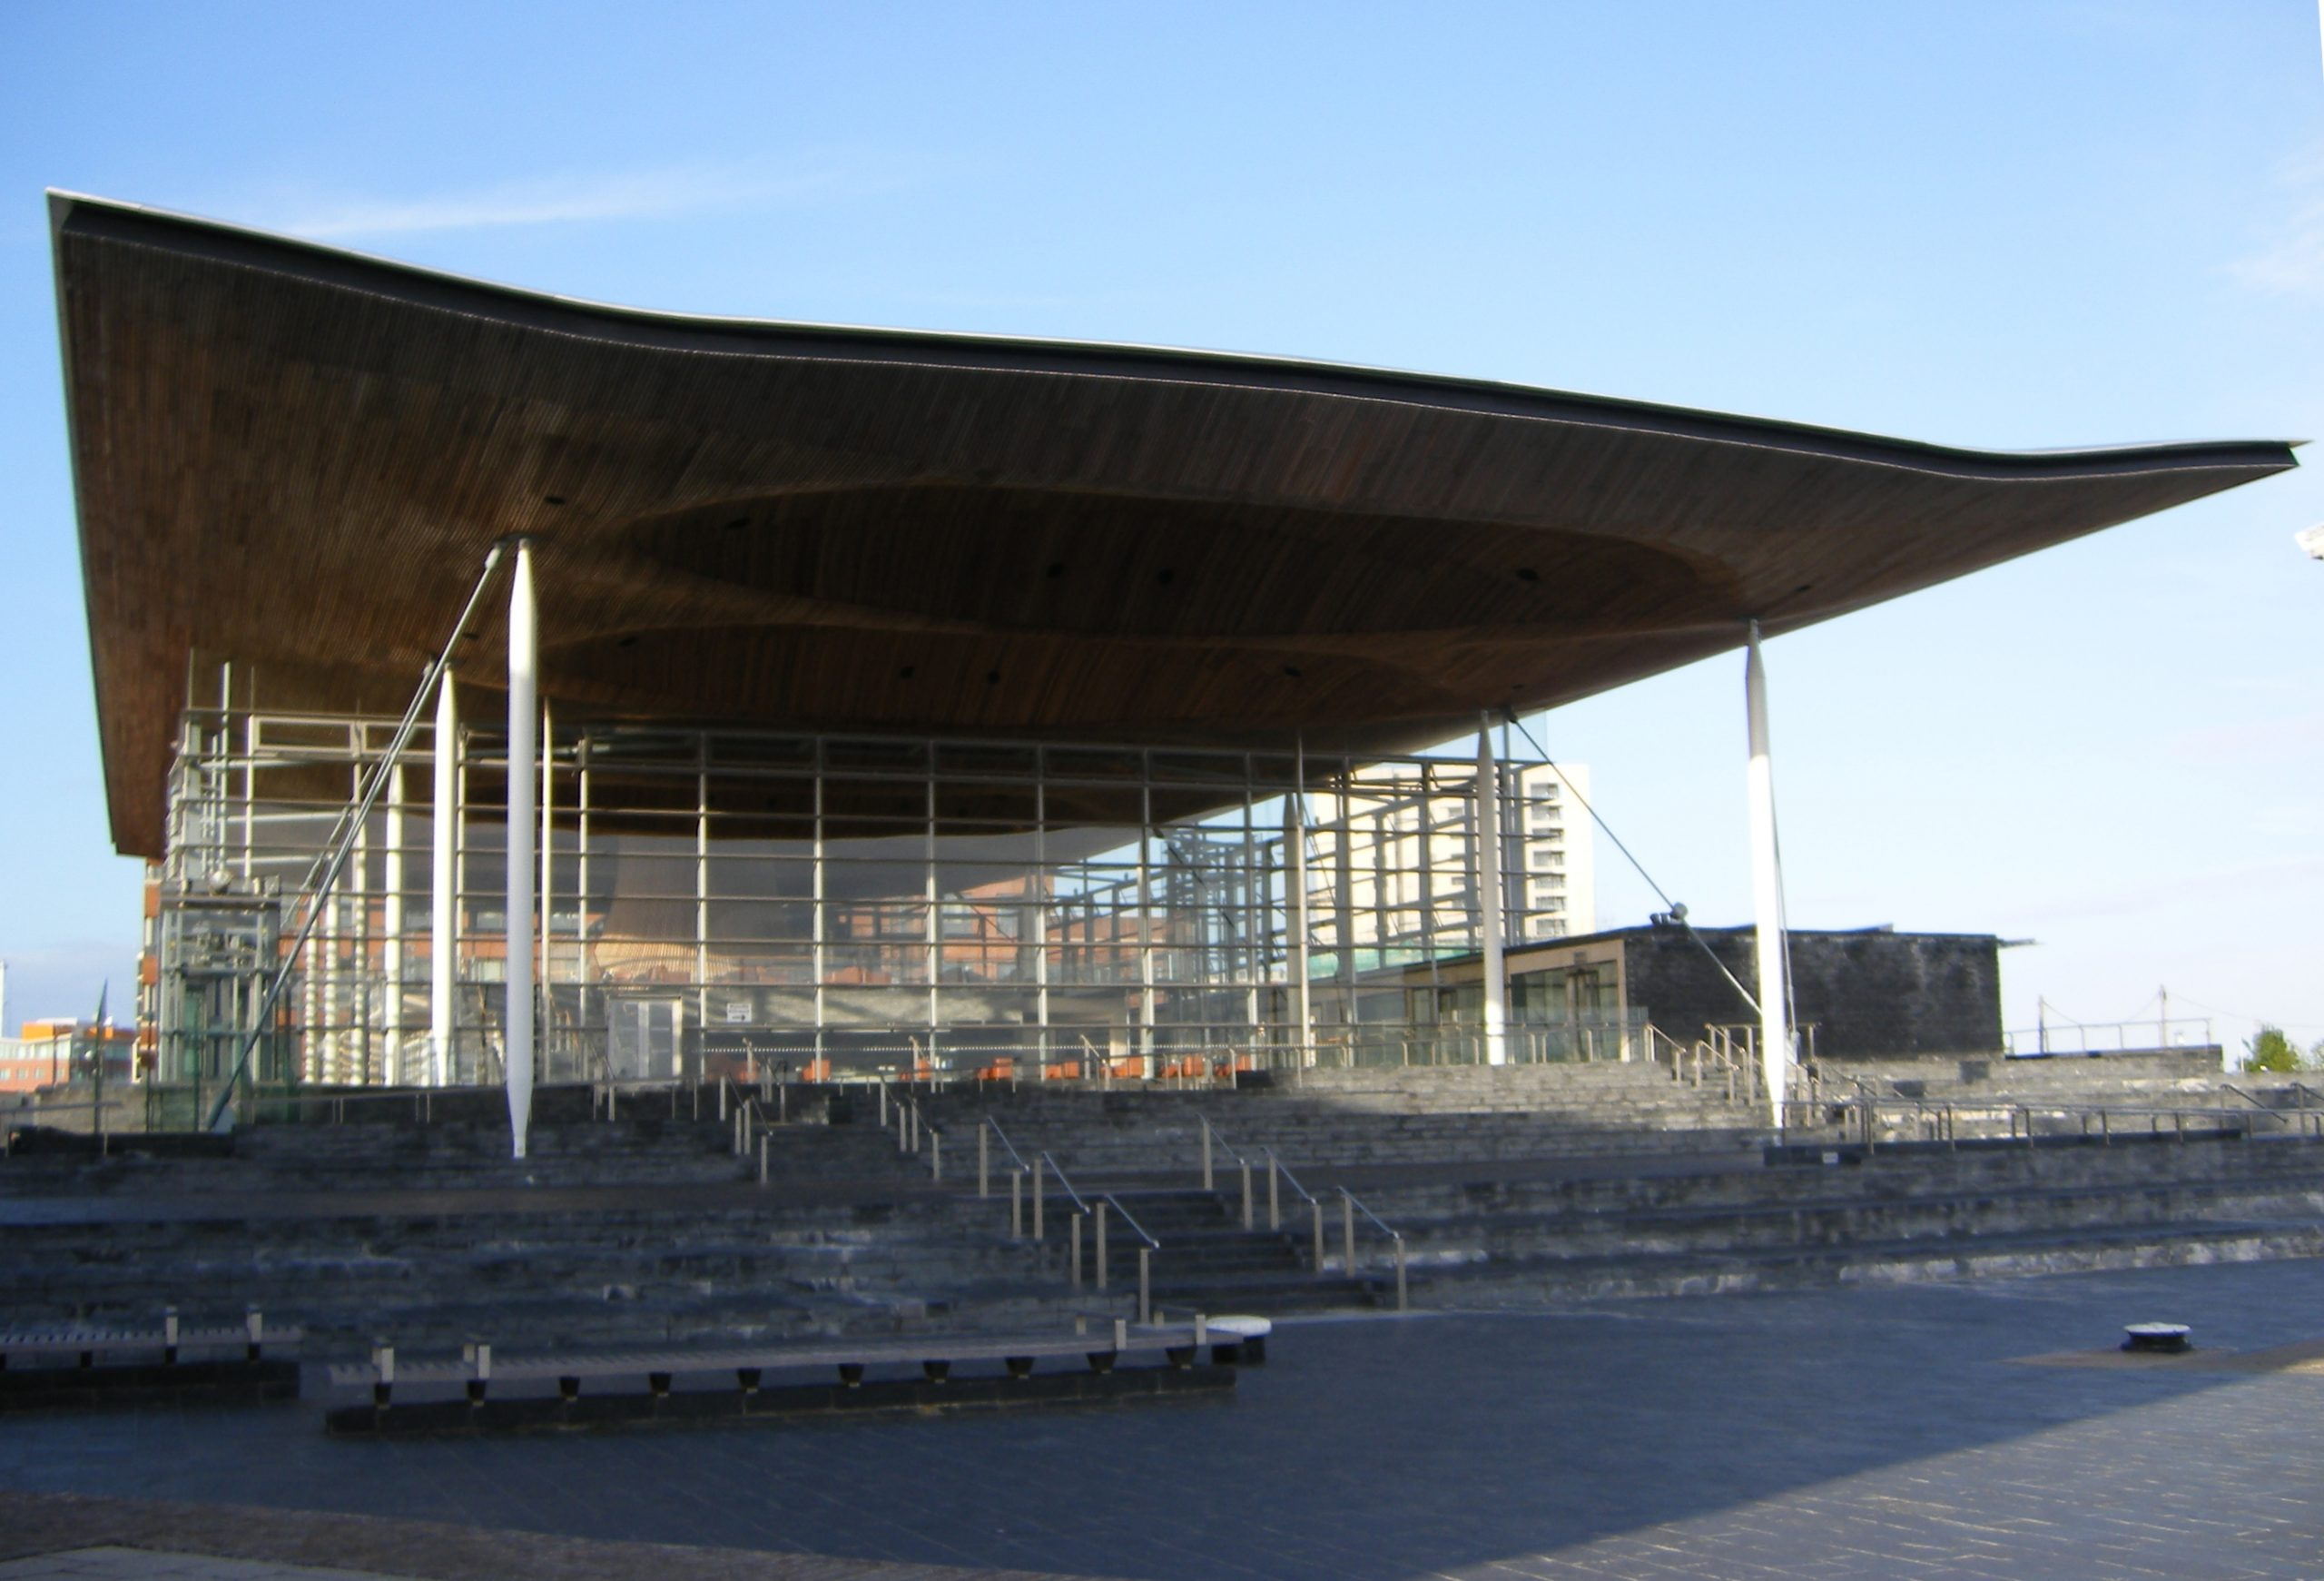 Webinar: Your guide to the 2021 Senedd election